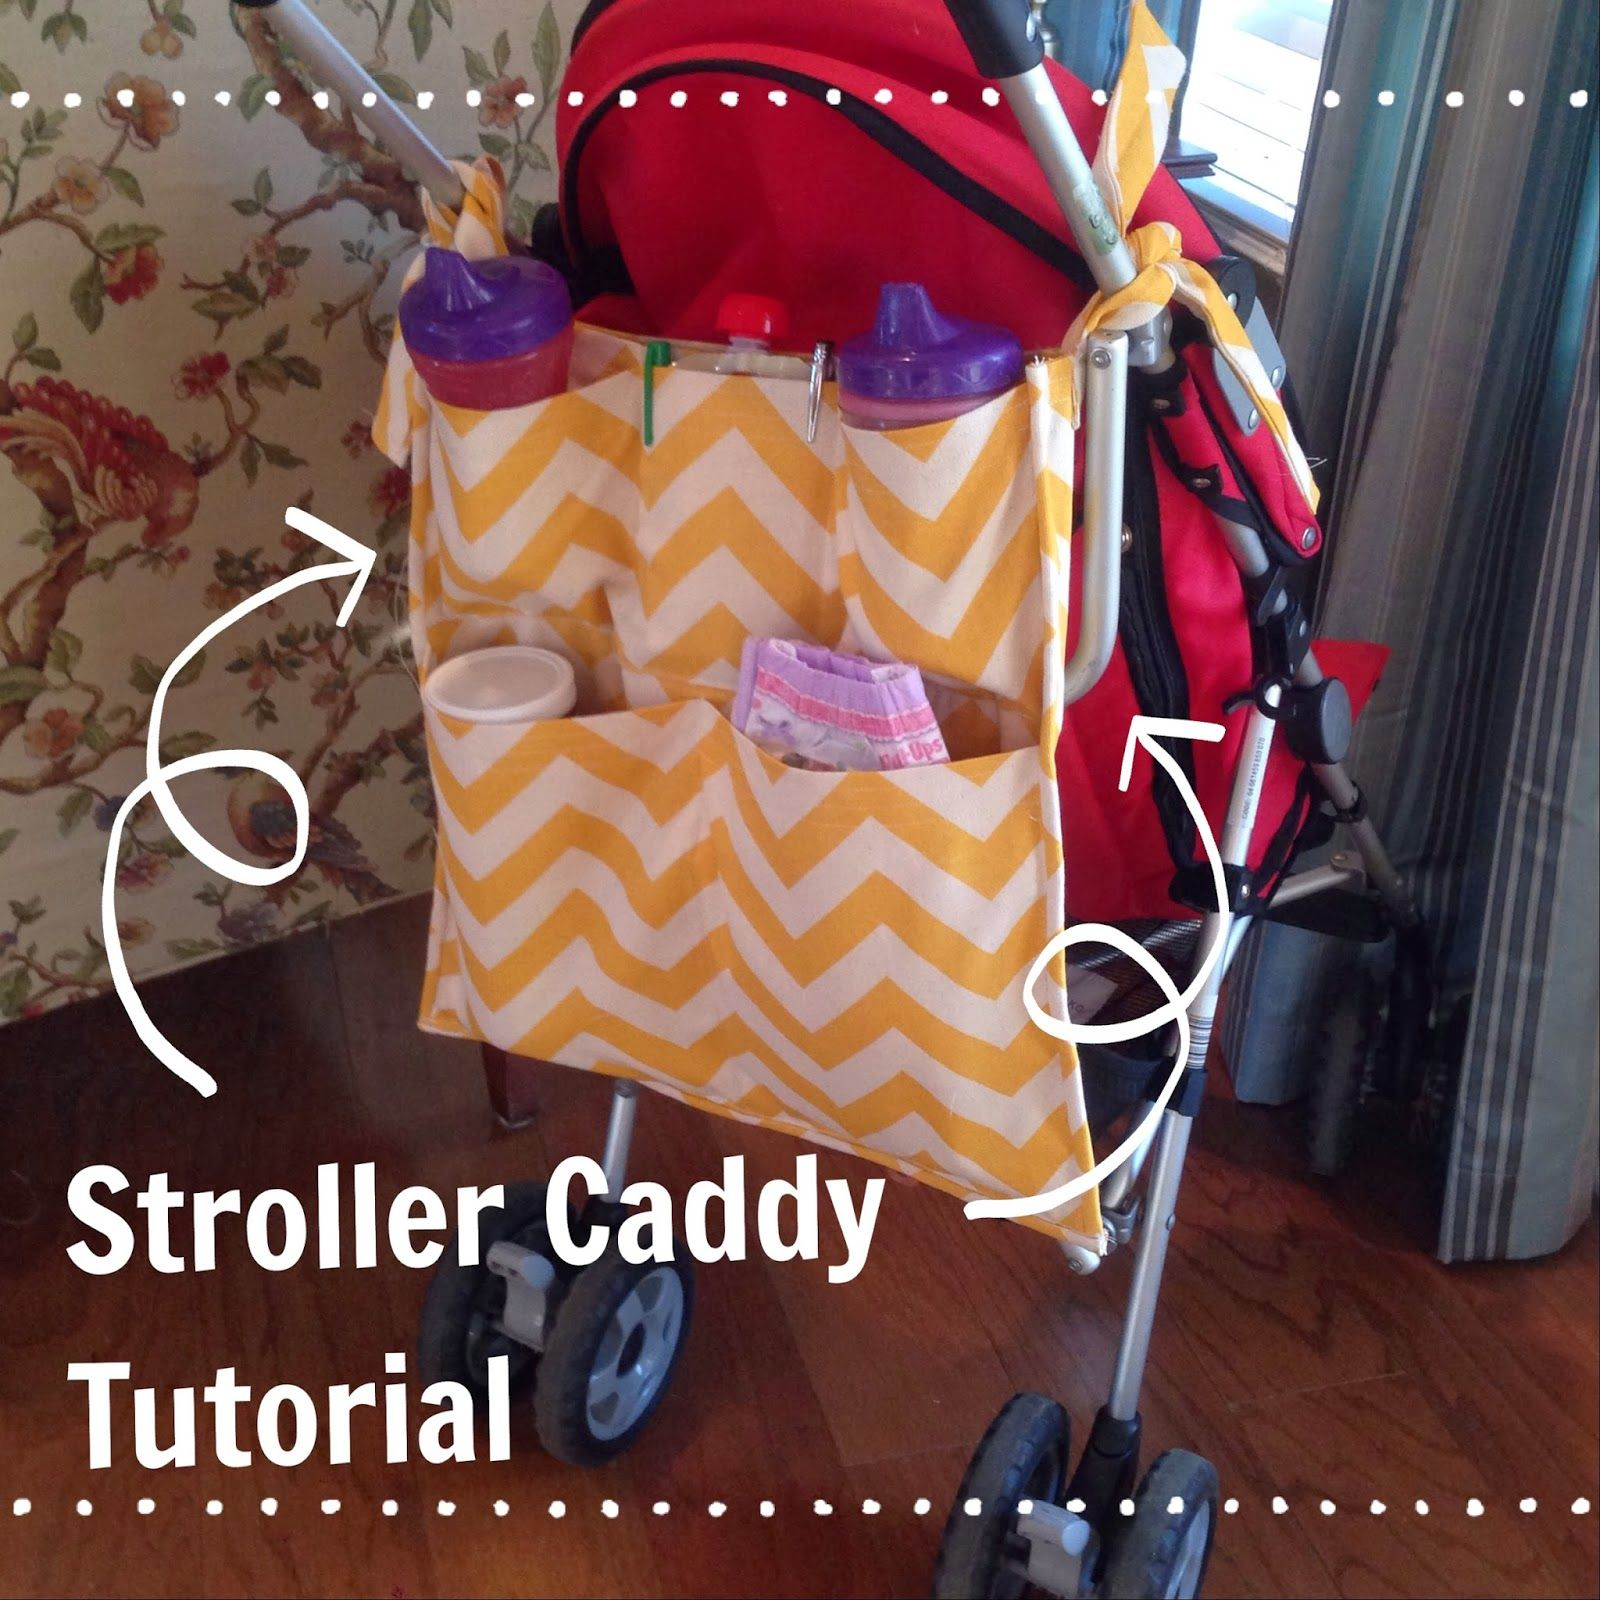 Sew your own stroller organizer   Sewing   Pinterest   Sewing ...